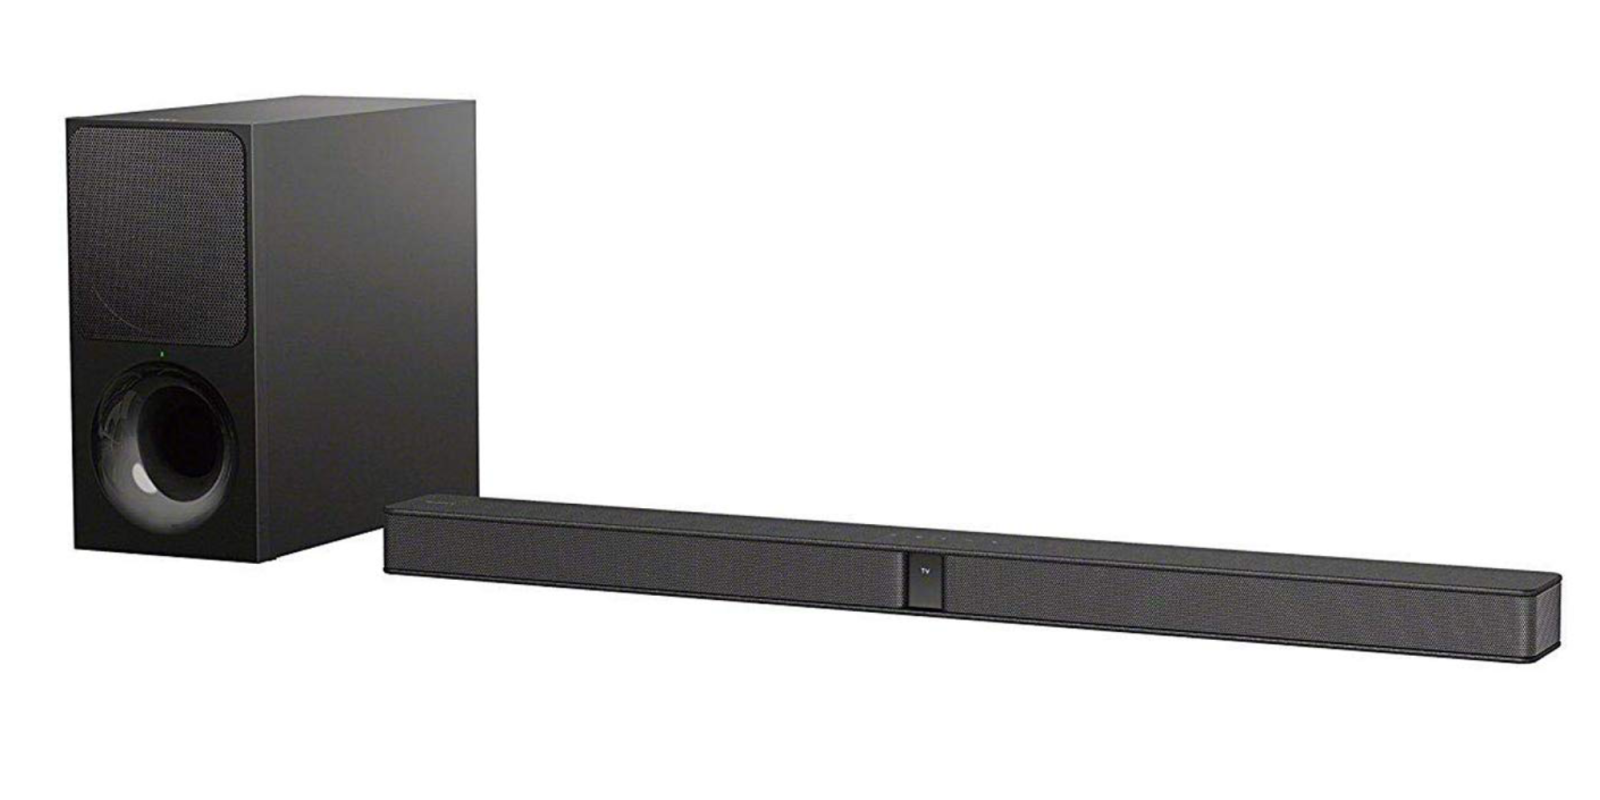 Bring home Sony's Ultra-slim 300W Sound Bar at an Amazon low of $148 (25% off)